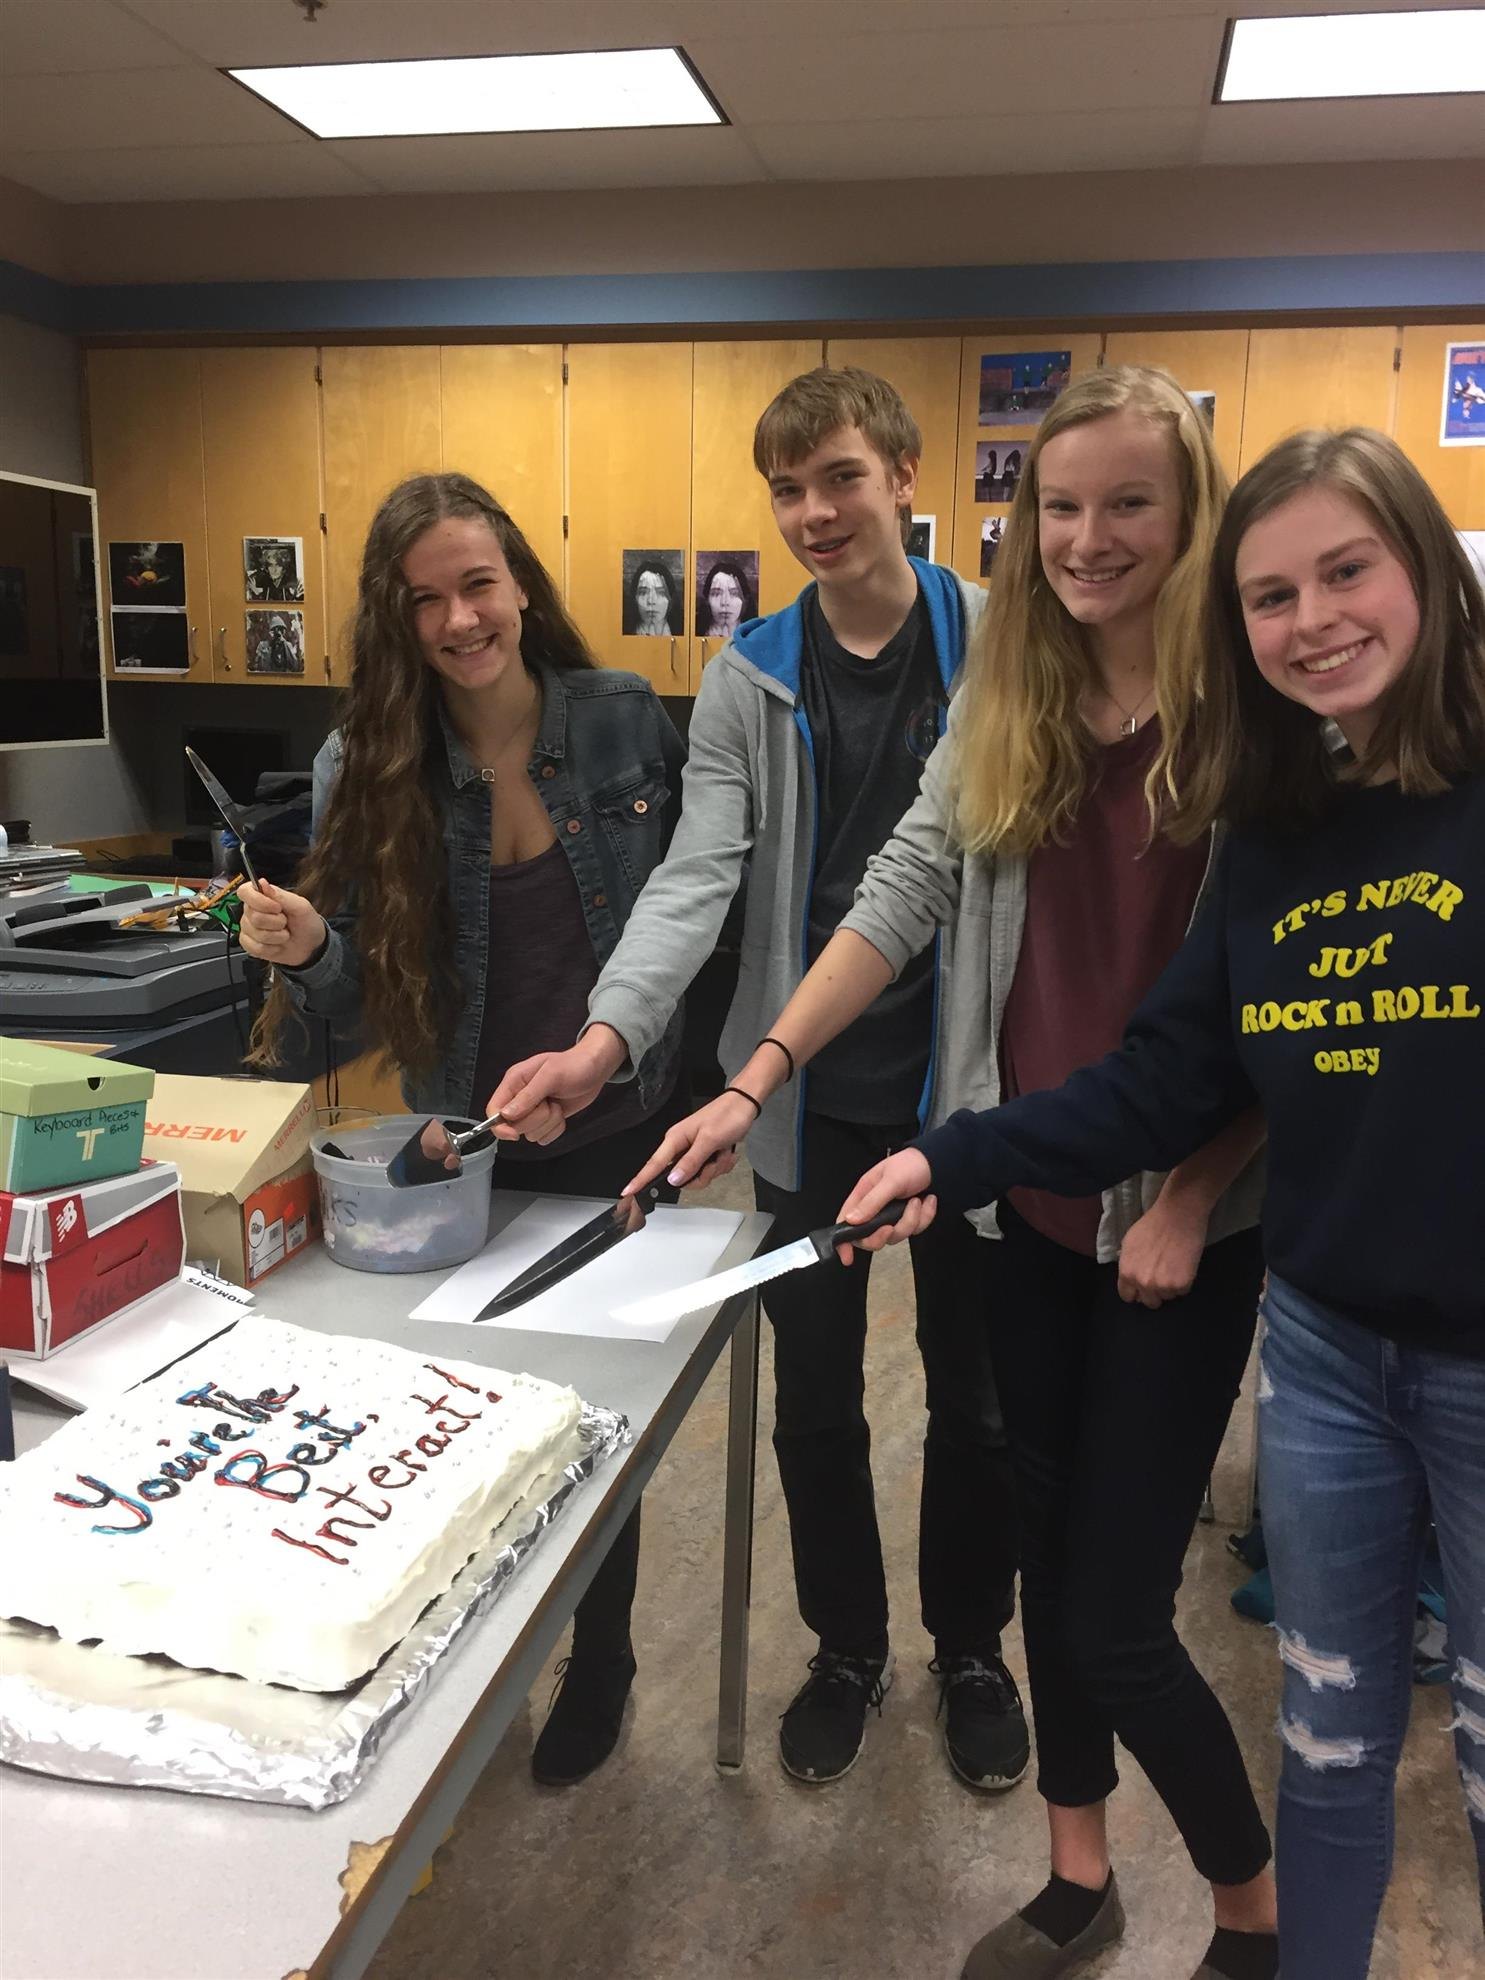 Mark R. Isfeld's Interact Wins Video Competition